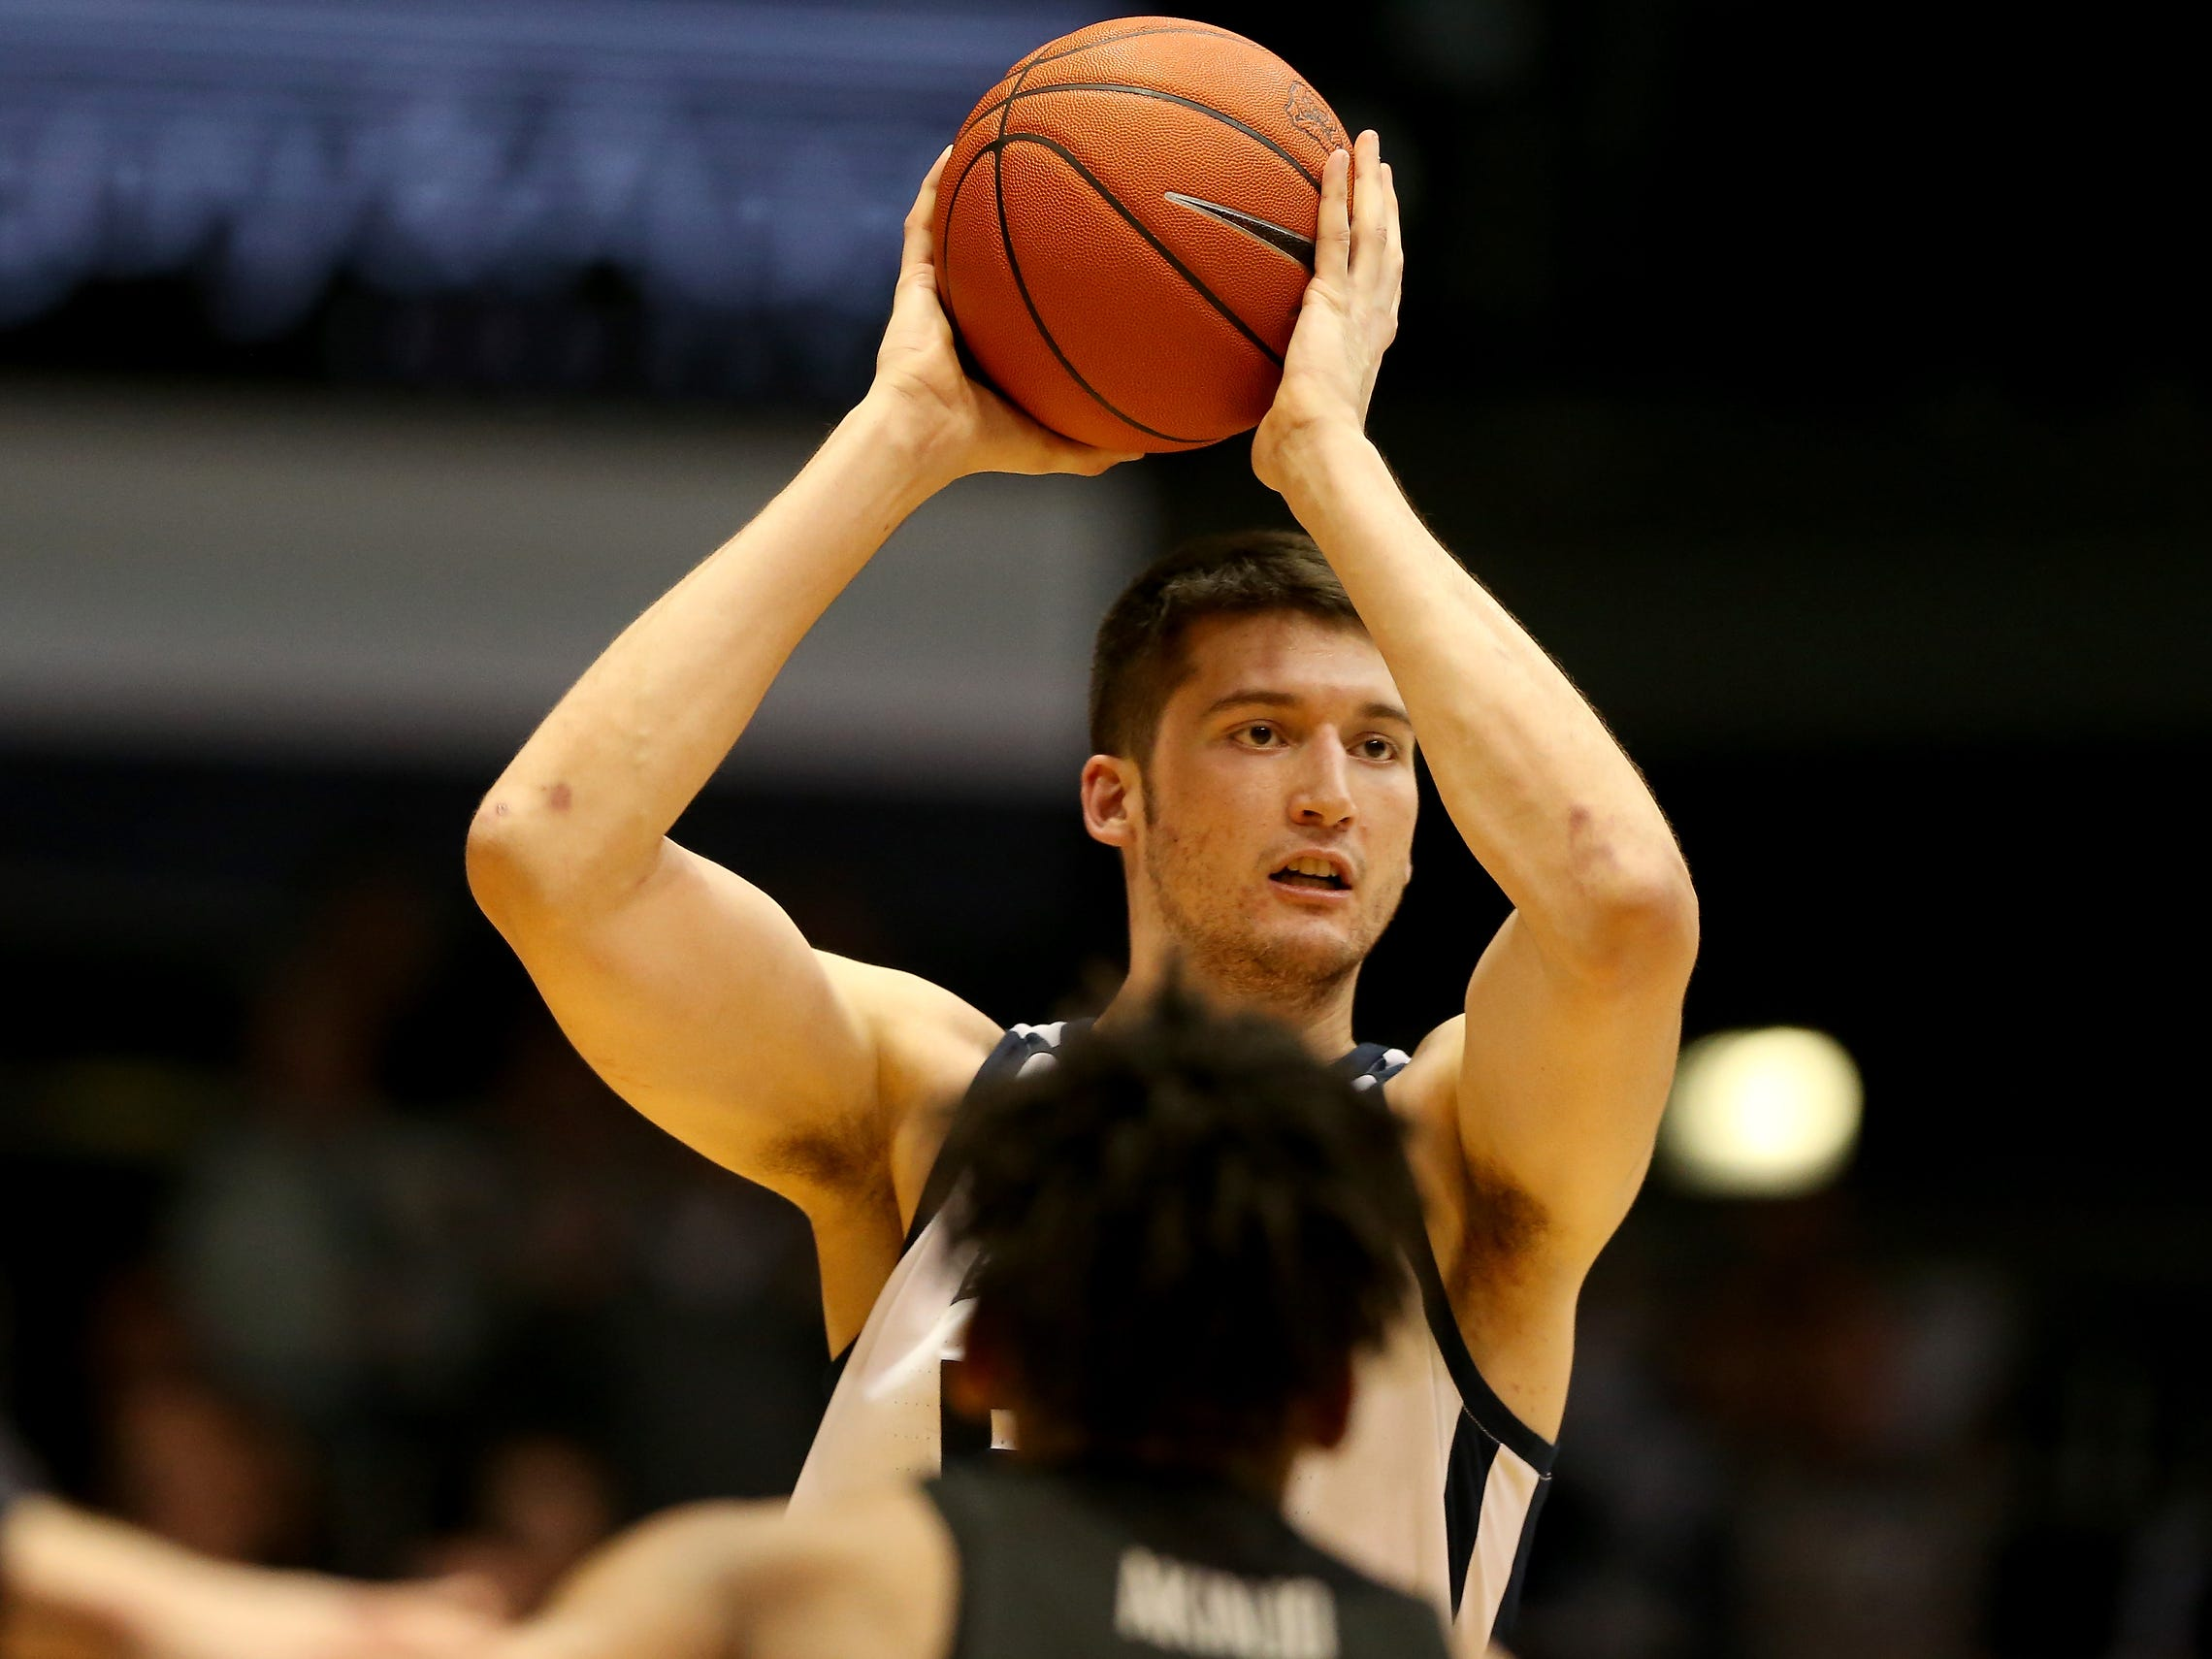 Butler Bulldogs forward Nate Fowler (51) looks for an outlet against the Georgetown Hoyas during the second half of game action between Butler University and Georgetown University, at Hinkle Fieldhouse in Indianapolis, Indiana on Wednesday, Jan. 2, 2019. The Butler Bulldogs fell to the Georgetown Hoyas 84-76.